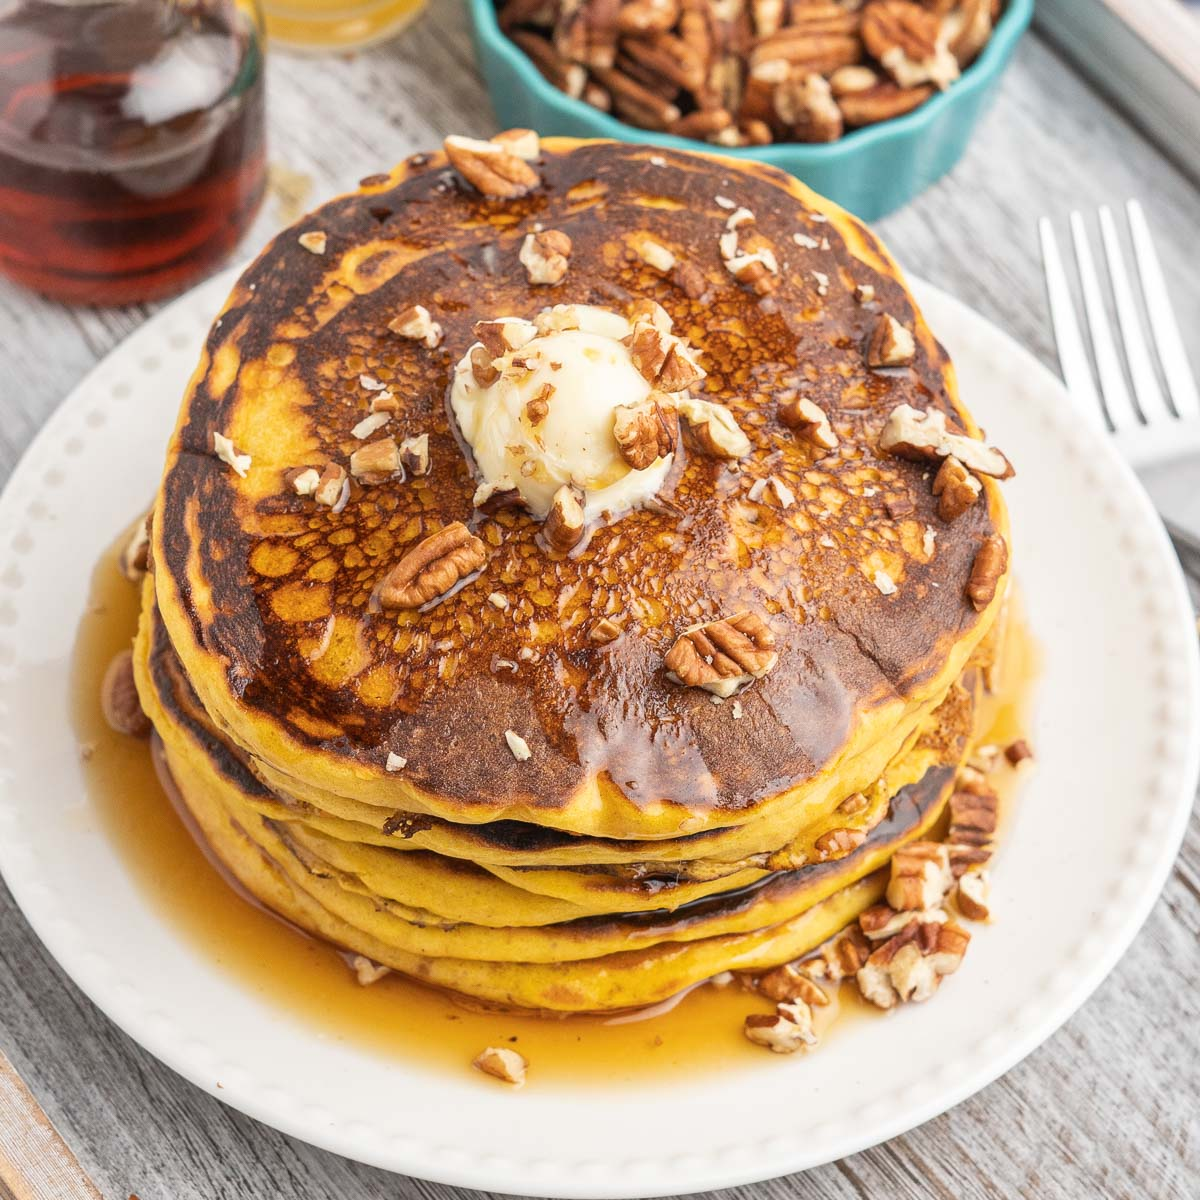 Pumpkin pancakes stacked on a plate topped with butter, syrup and chopped pecans.